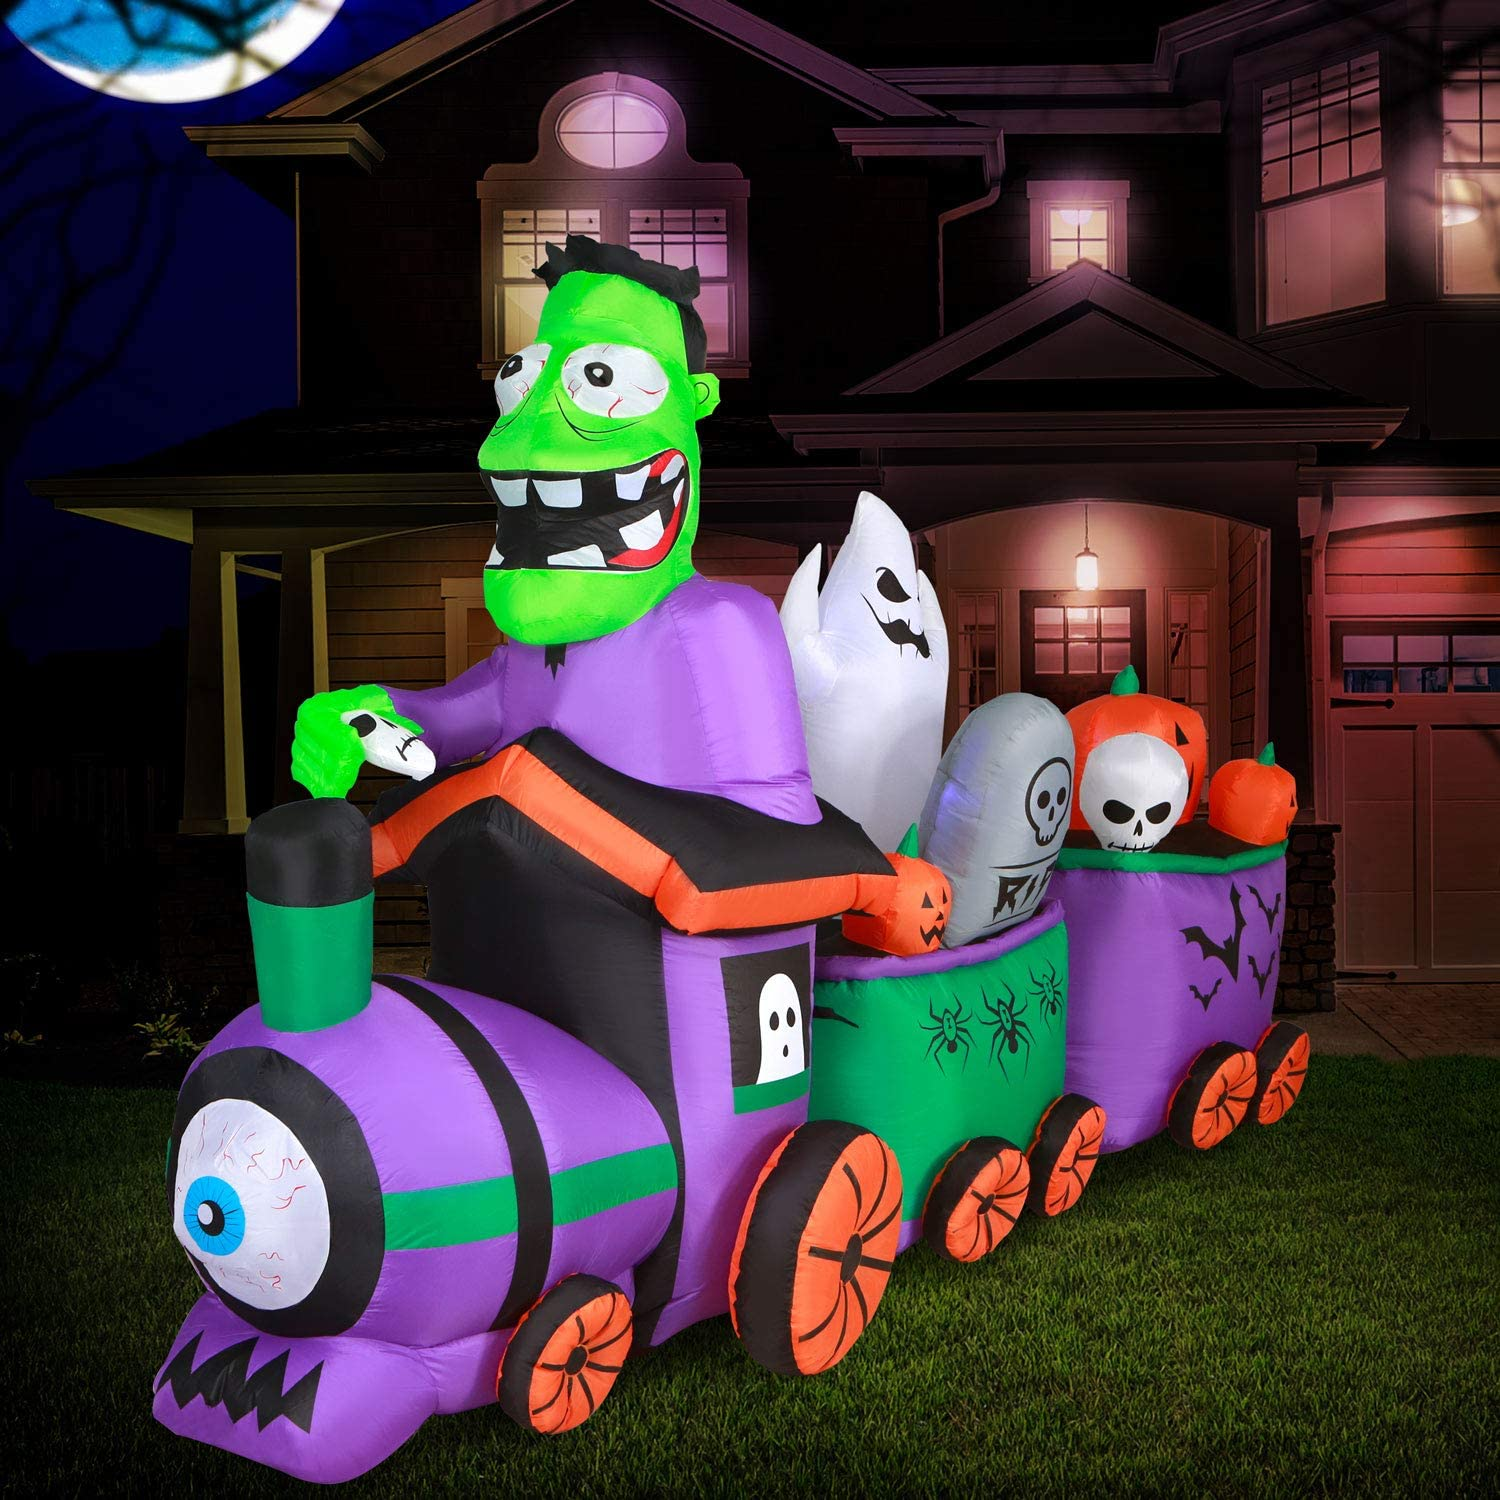 Holidayana Graveyard Train Halloween Inflatable -10 ft Long Graveyard Train Yard Inflatable Decoration with LED Lights, Built-in Fan, and Tie-Downs